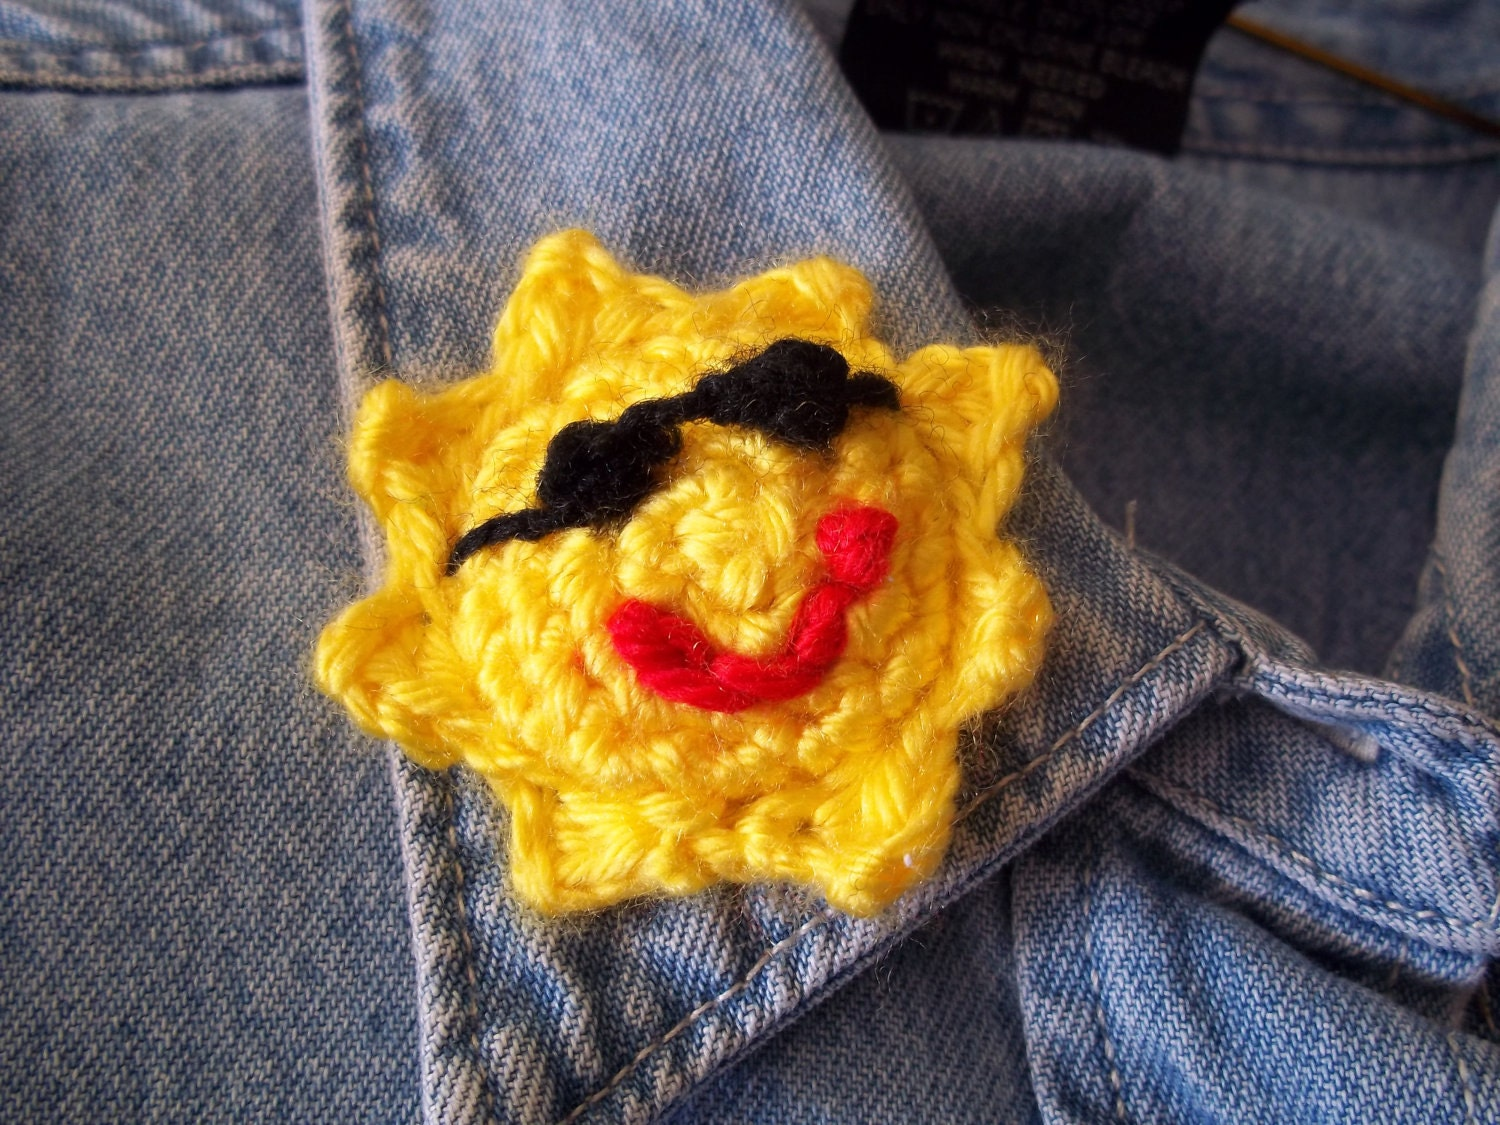 Cool Dude Sunshine Embellishment/Applique